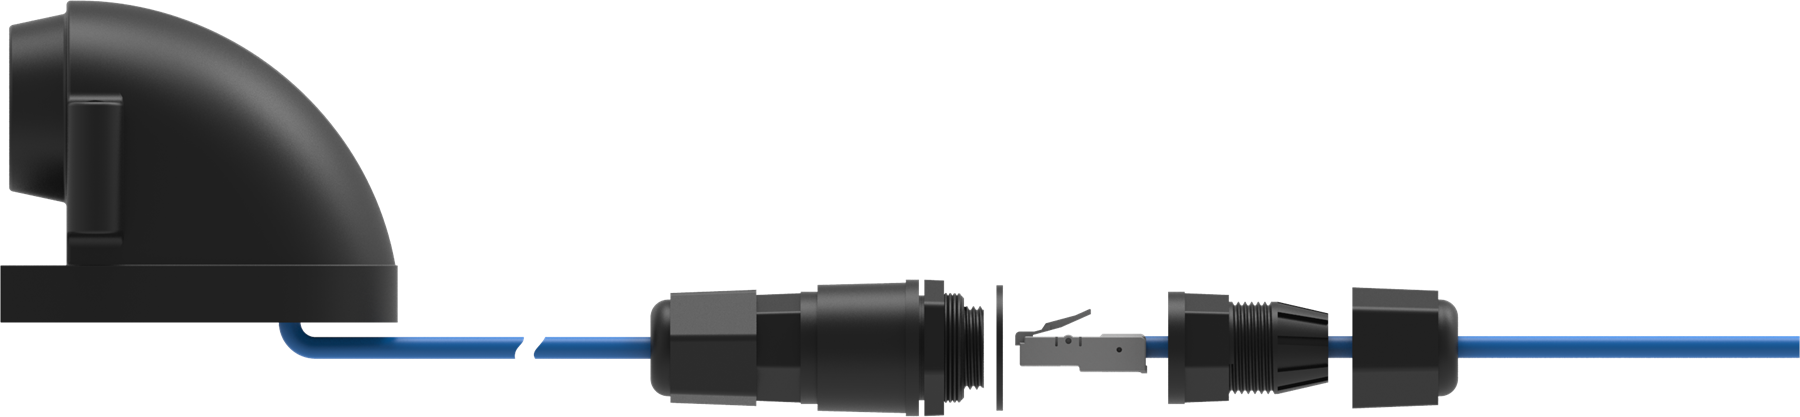 Connector on the part of videocamera